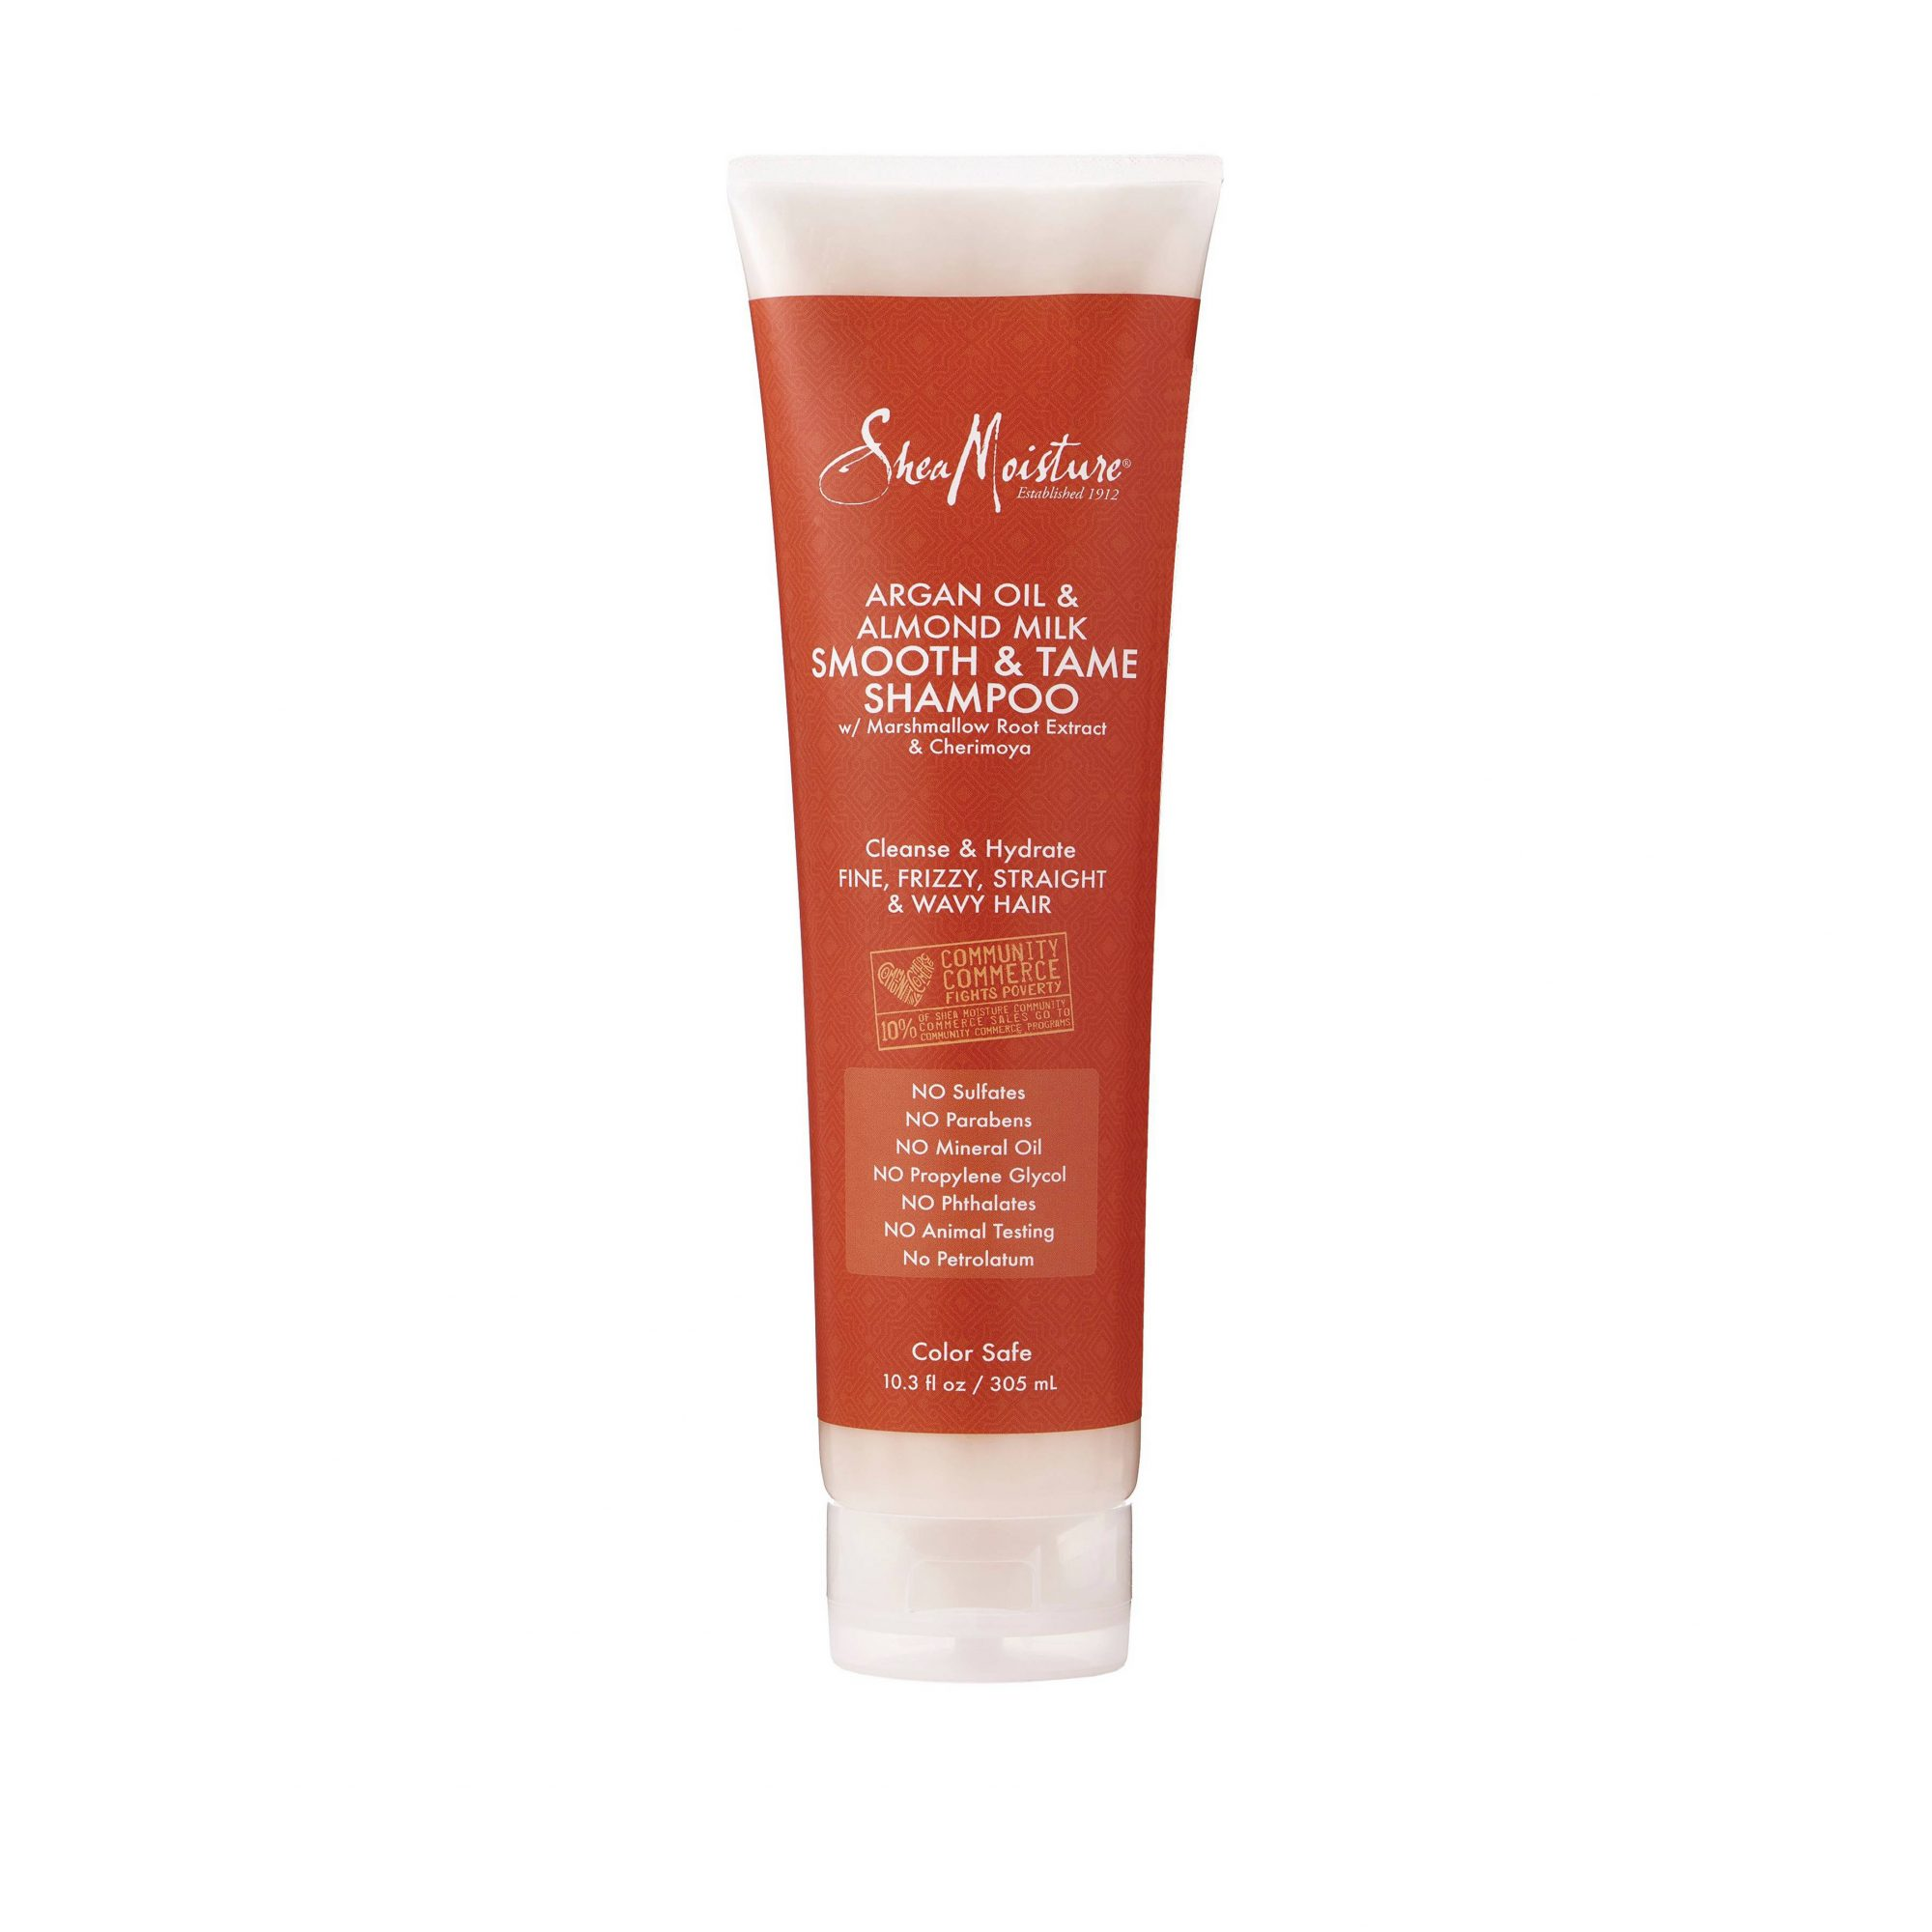 SheaMoisture Smooth & Tame Shampoo